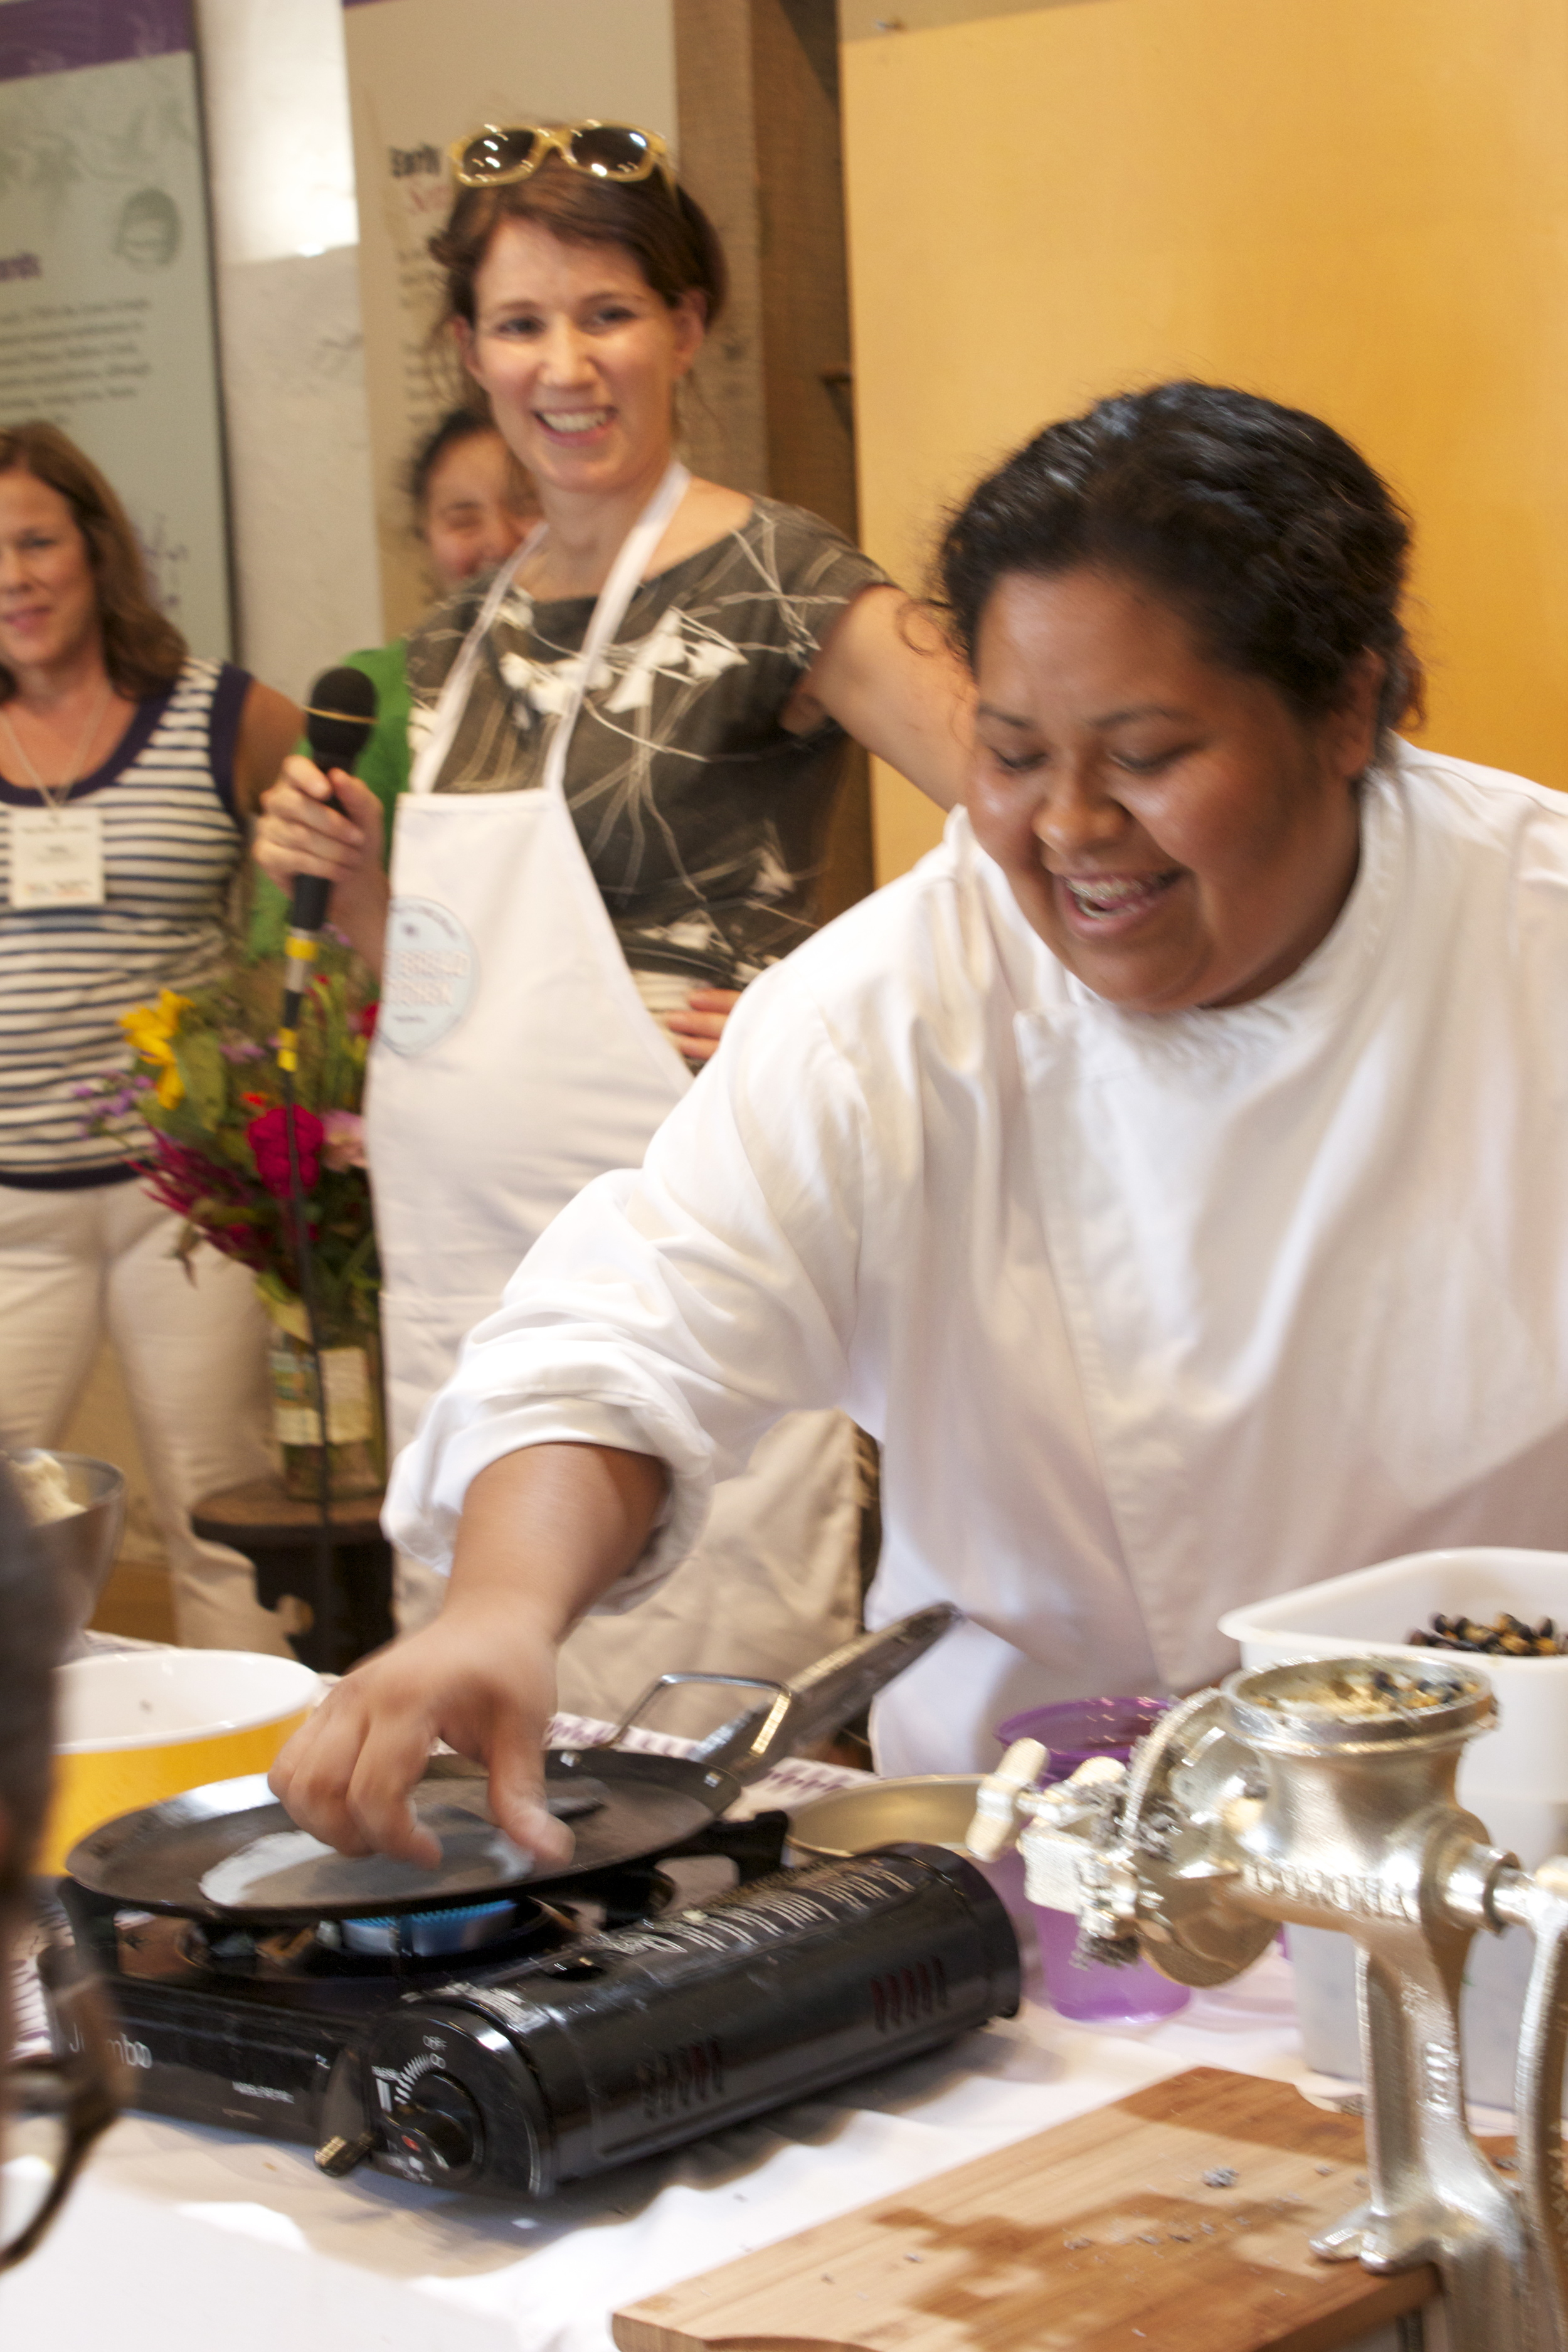 the ladies of  Hot Bread Kitchen  demonstrate the art & science of homemade tortillas!